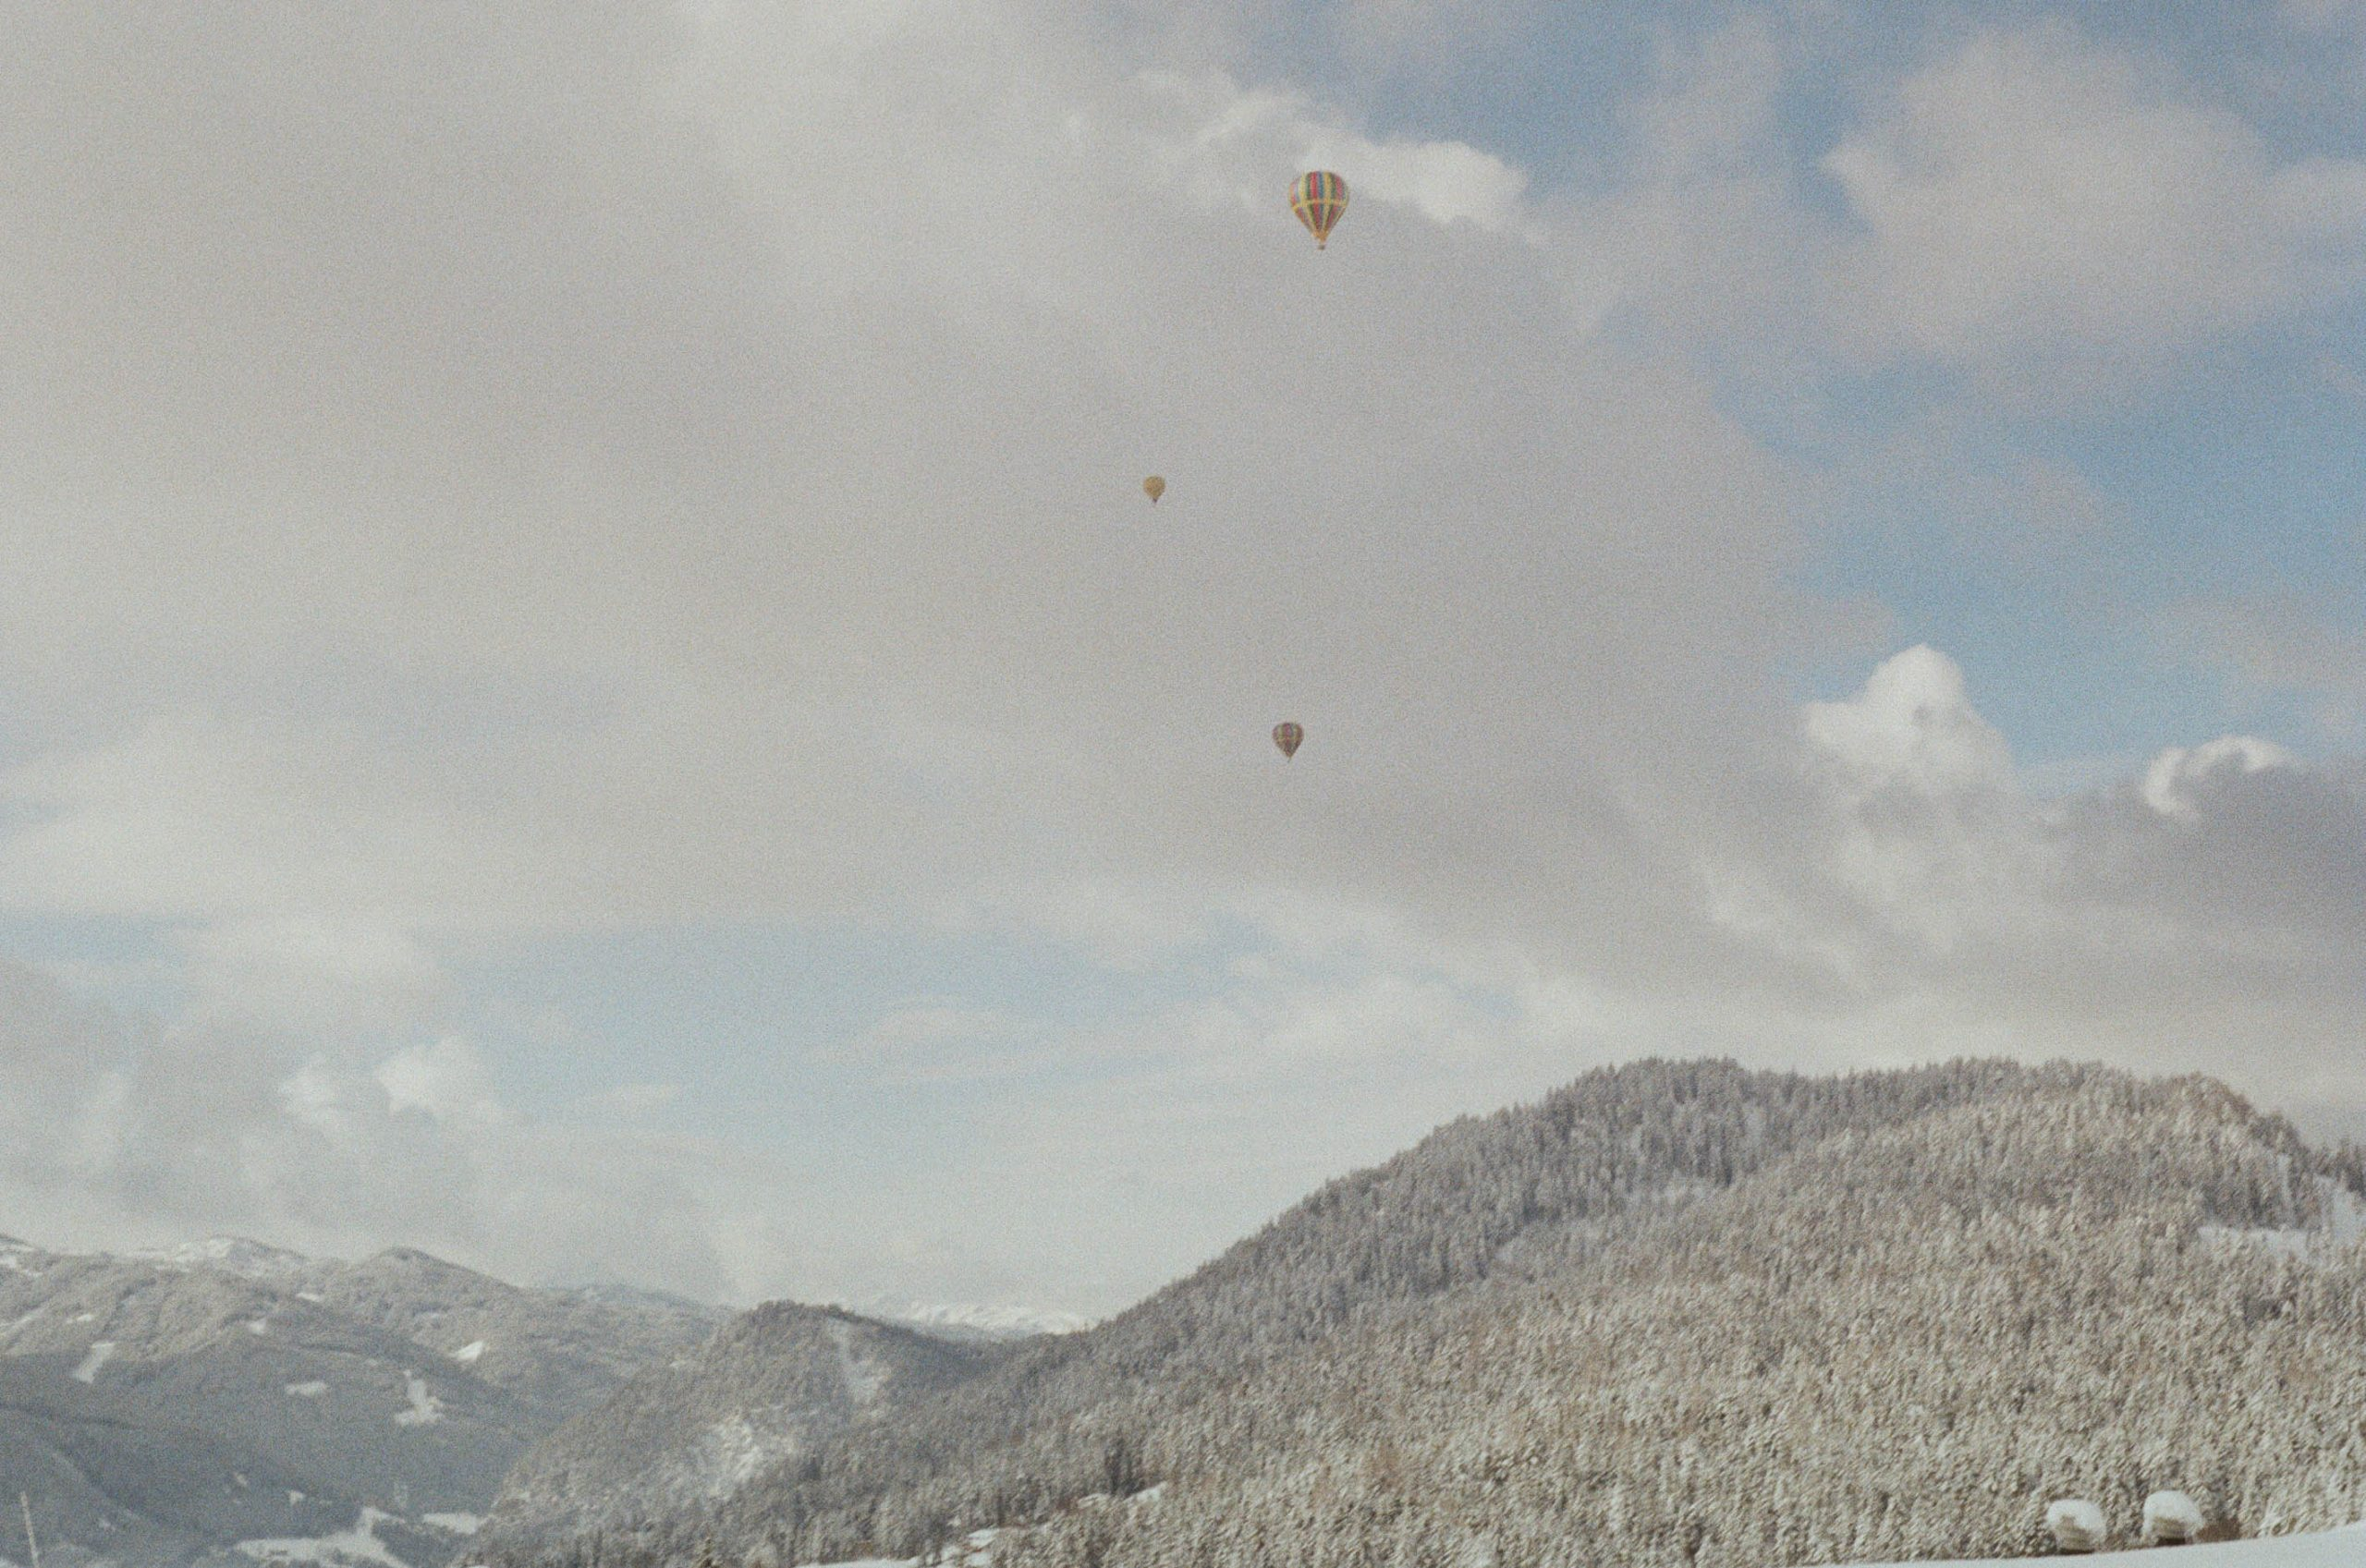 Baloons in winter